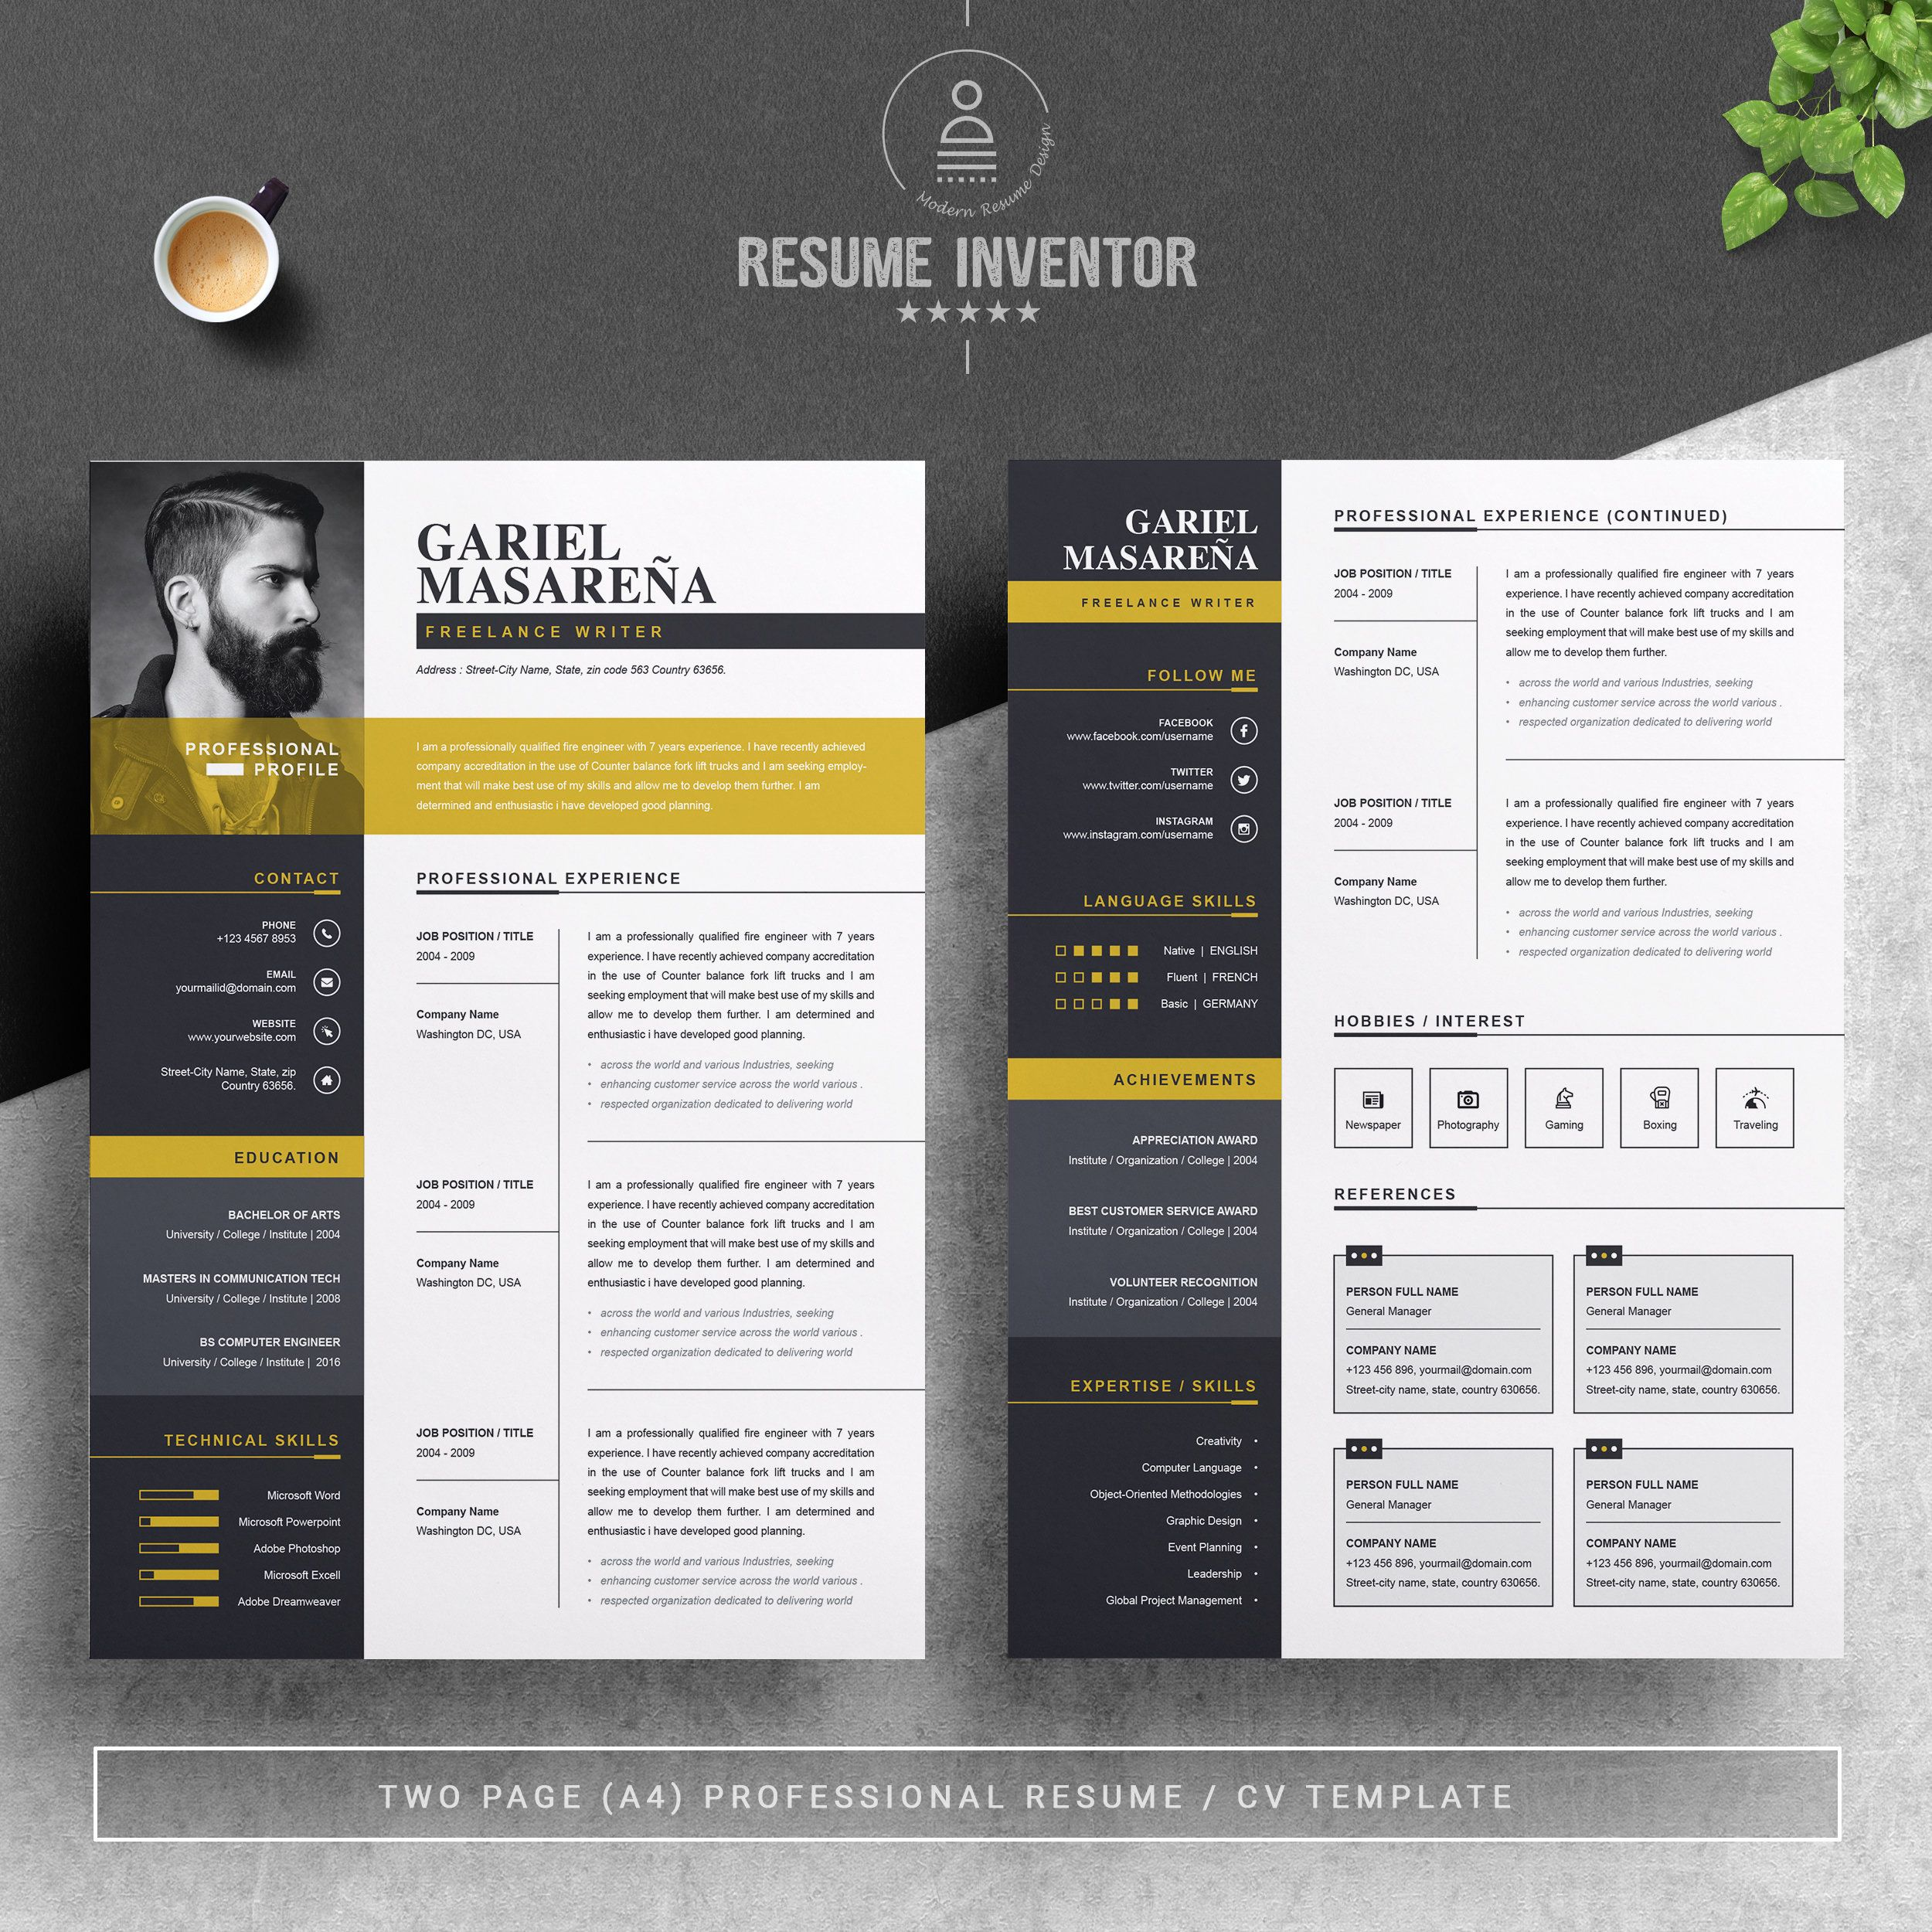 Resume Template Modern Professional Resume Template For Word Cv Resume Cover Letter A4 Size 2 Pages Pack Cover Letter Resume Template Professional Resume Design Template Resume Design